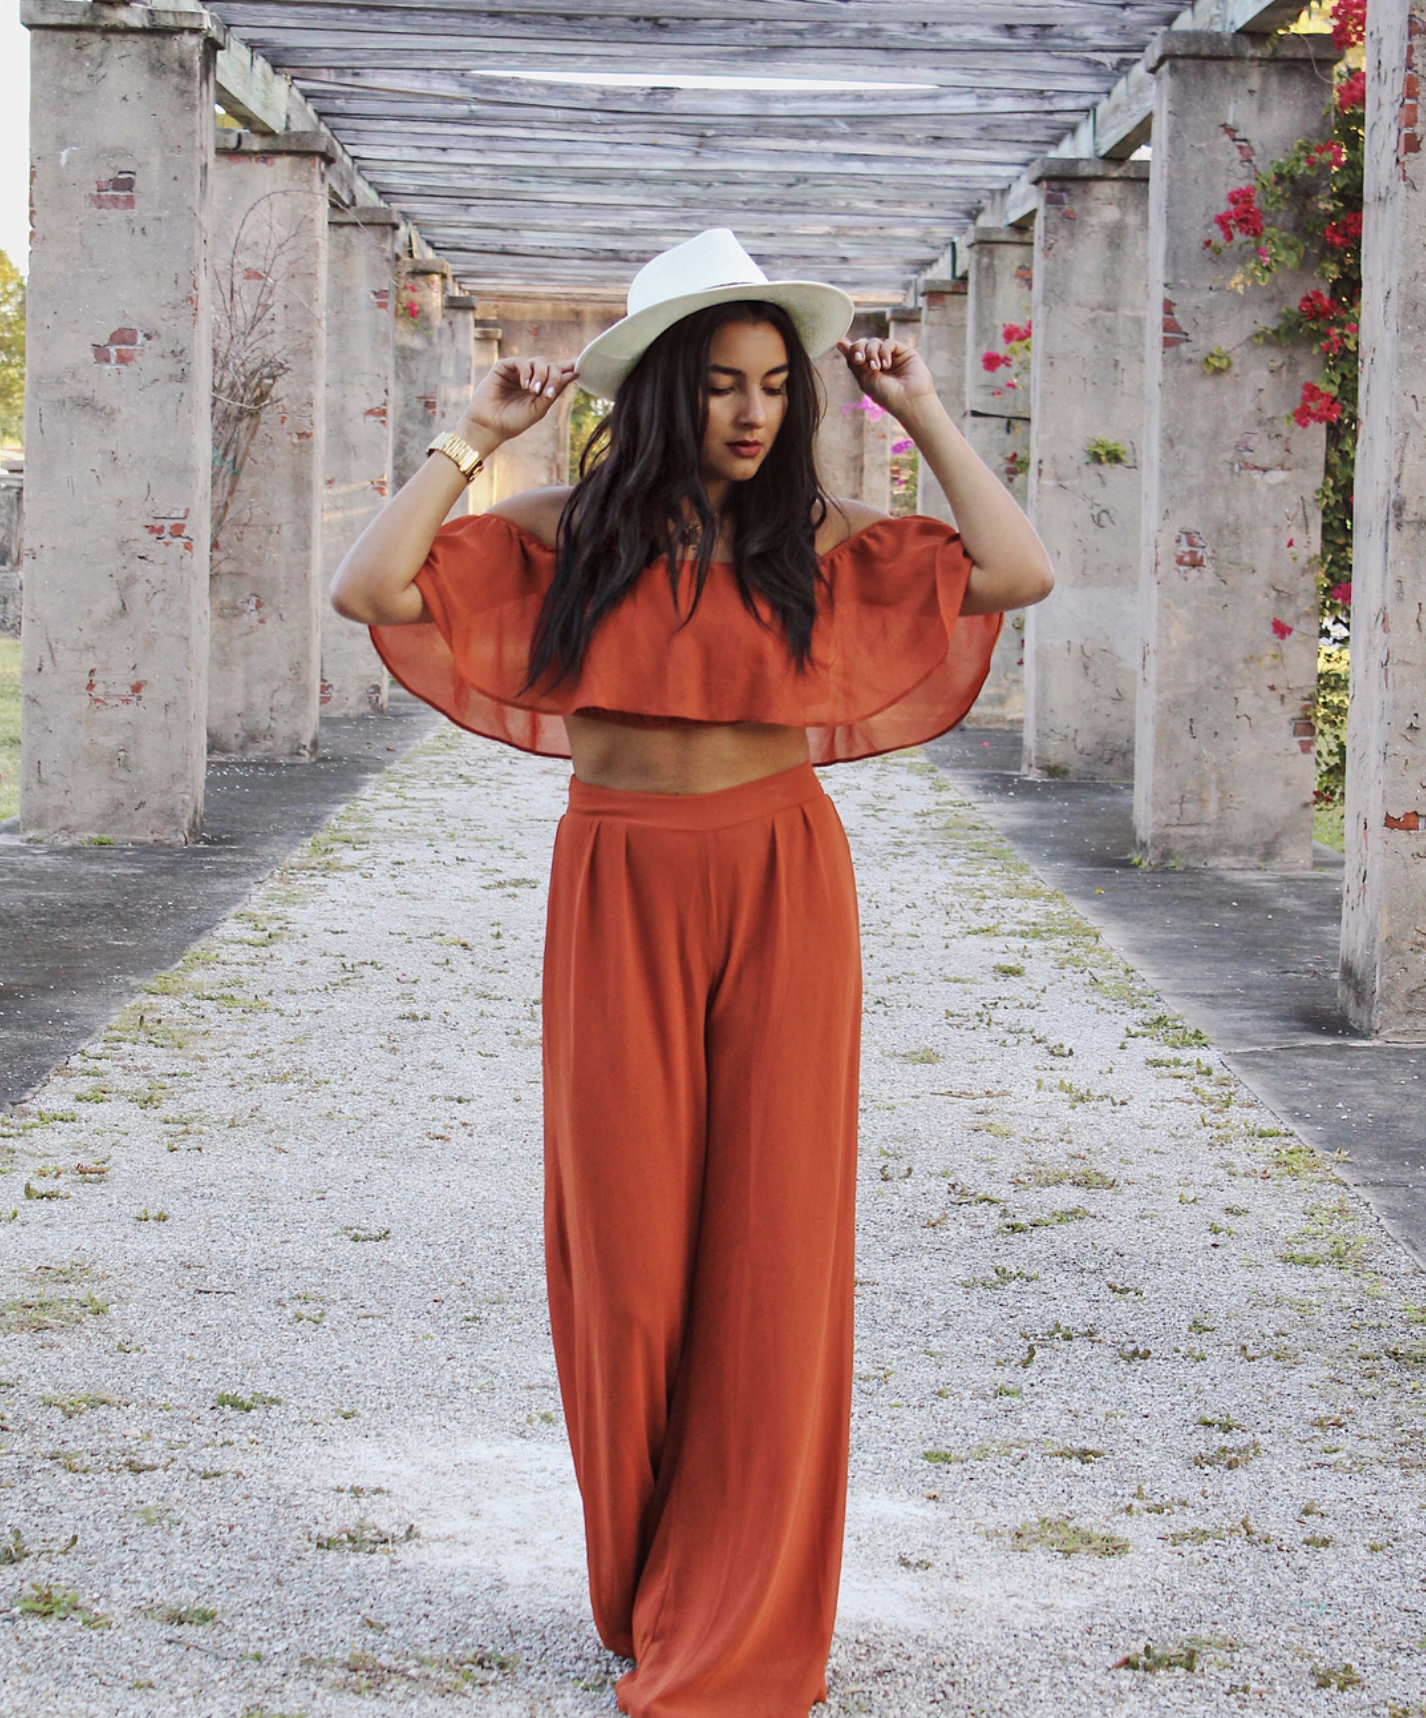 c8b623ad45 Low Rider Pant Set - Rust. May 2019. Available in Ivory, Dusty Pink, Rust, Black  Off Shoulder Crop Top Wide Leg ...